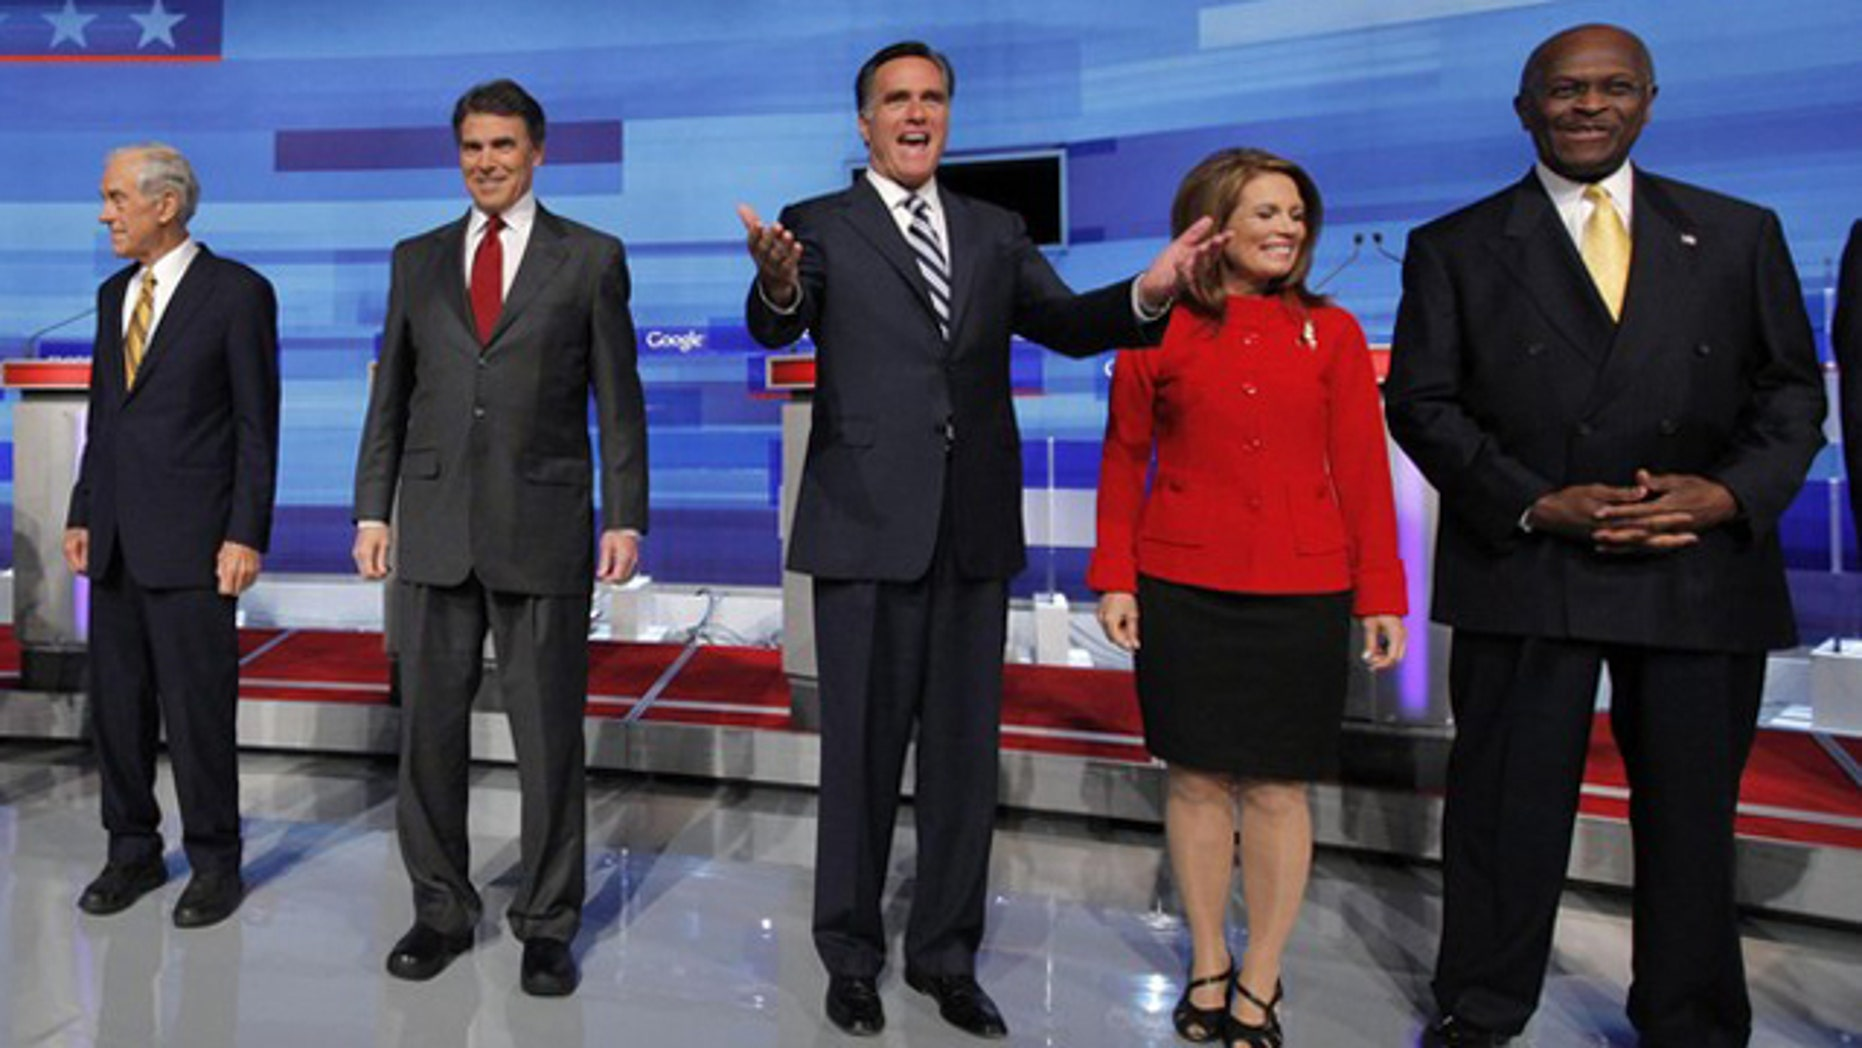 From left to right, Rep. Ron Paul; Texas Gov. Rick Perry; former Massachusetts Gov. Mitt Romney; Rep. Michele Bachmann; and businessman Herman Cain pose before a Fox News/Google debate in Orlando, Fla., Sept. 22.